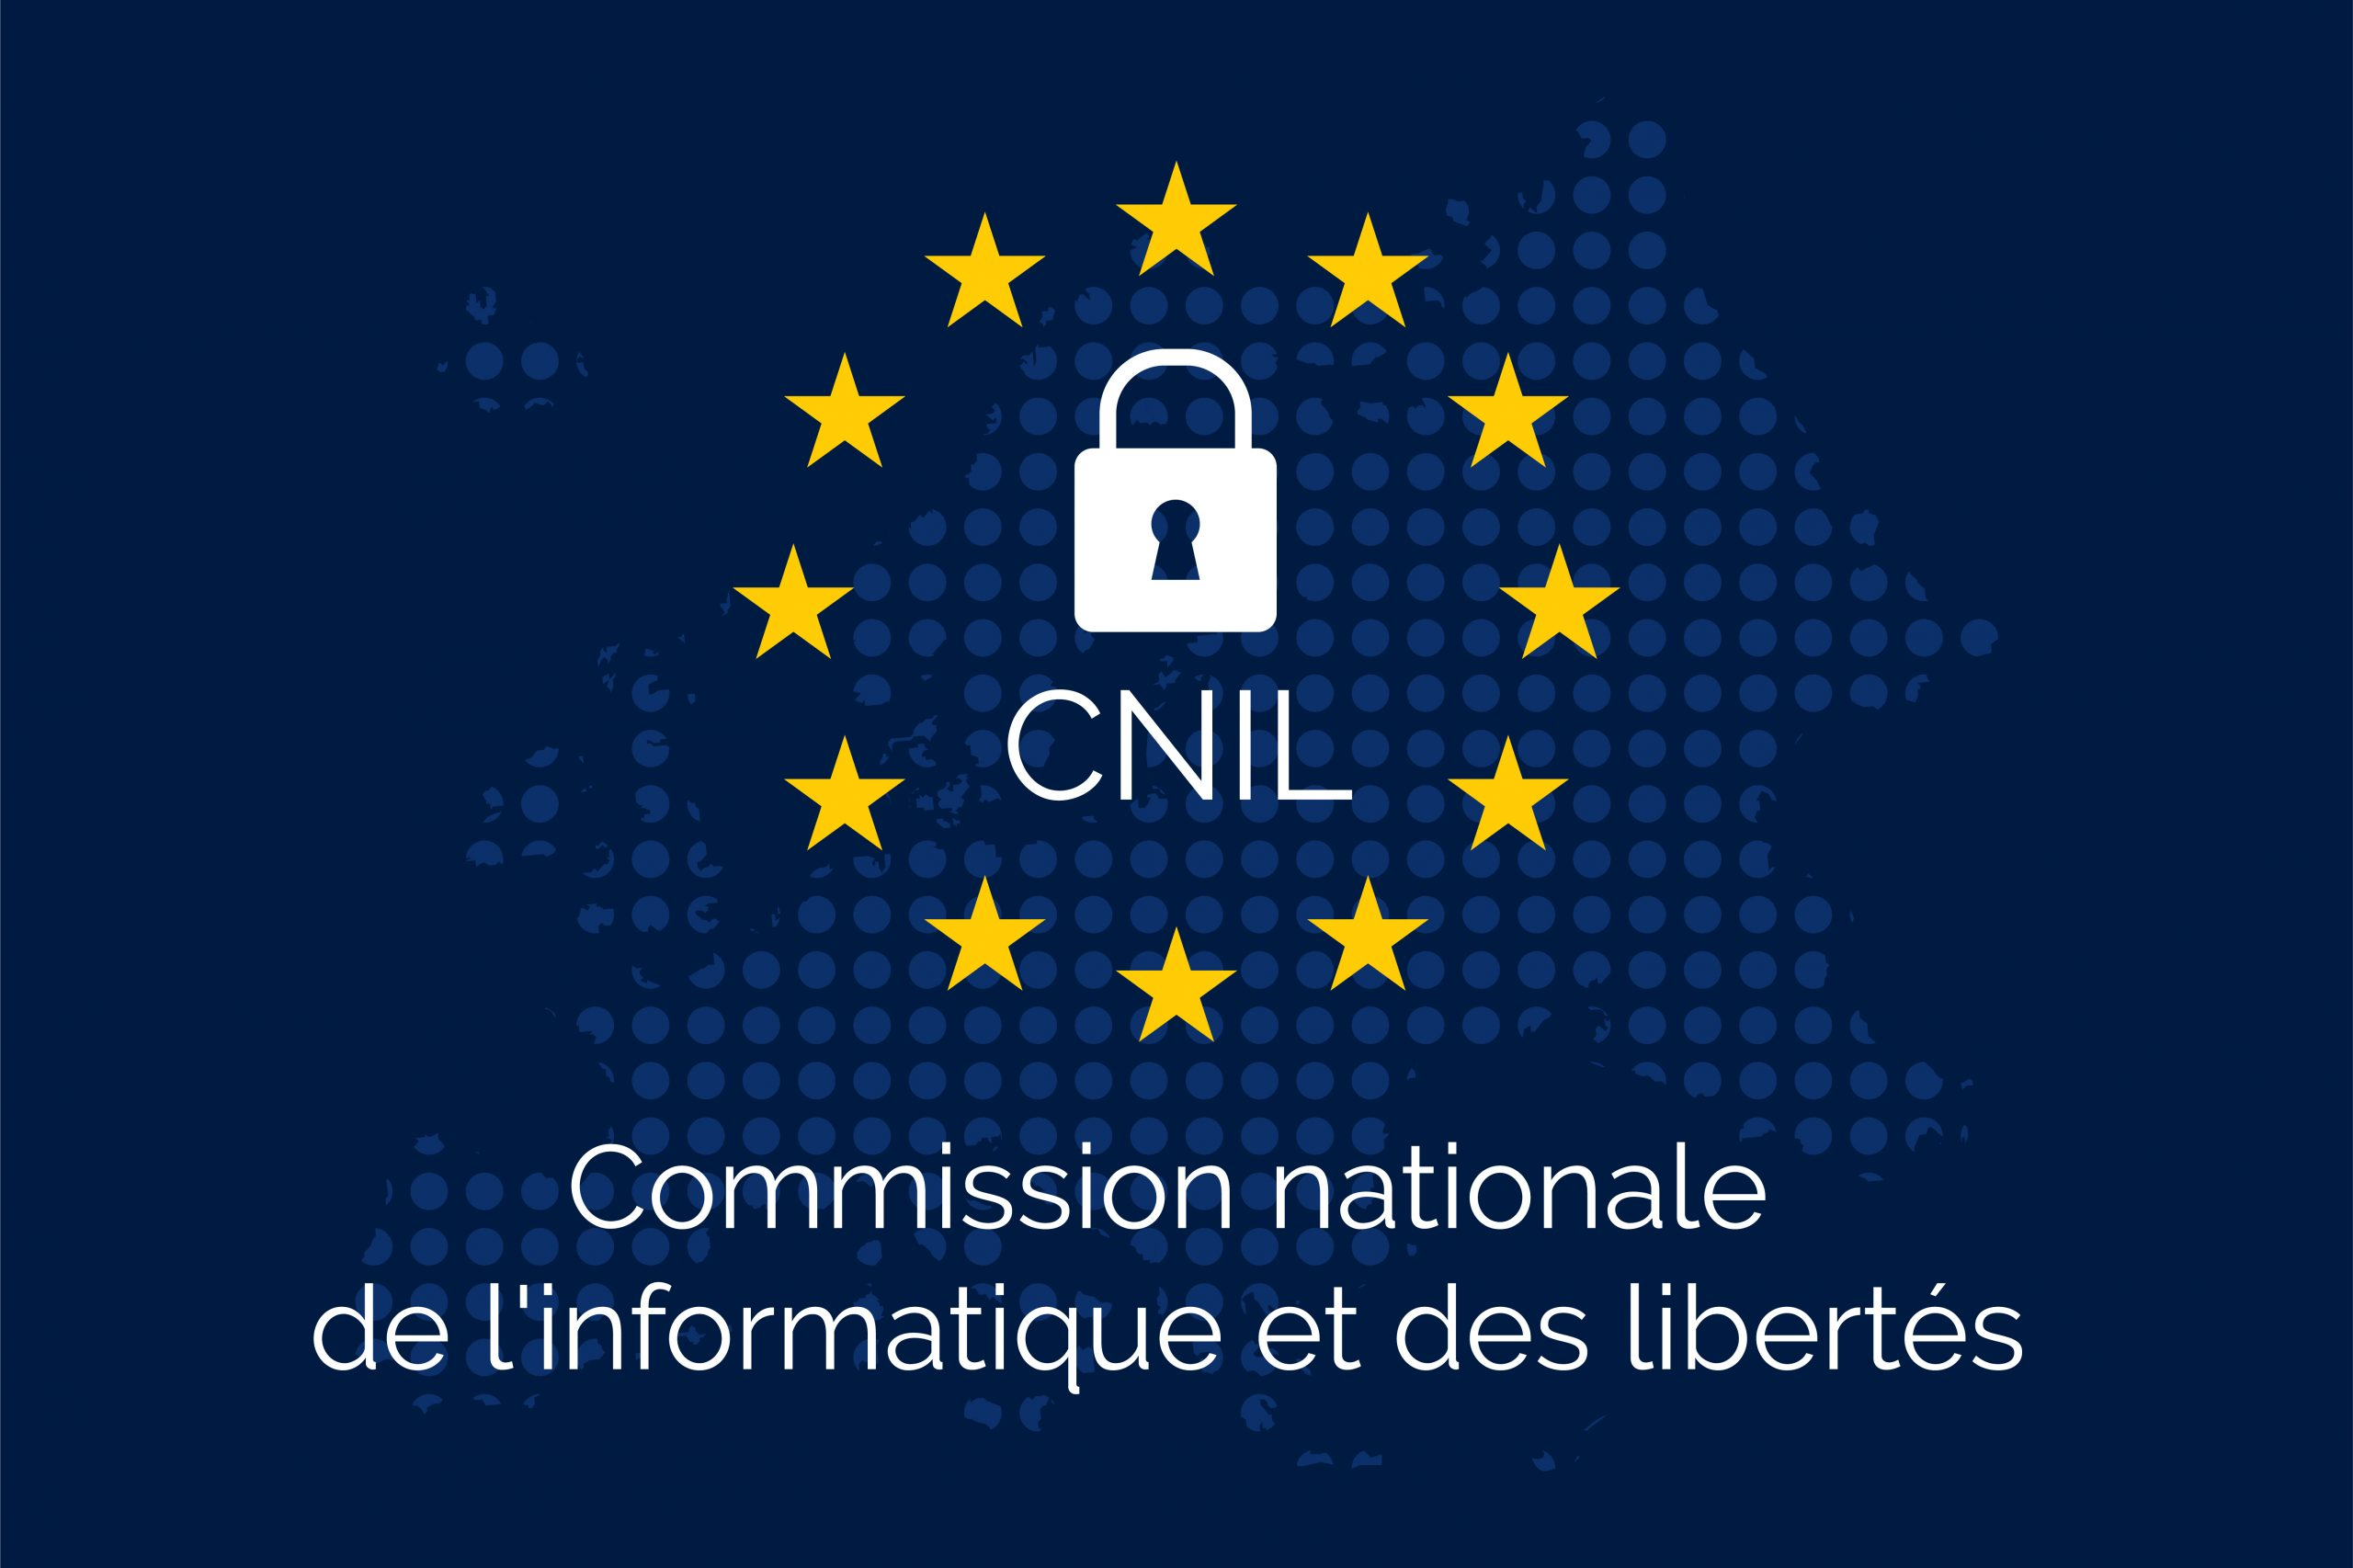 French Data Protection Authority Hands Down First Sanction As Lead Authority